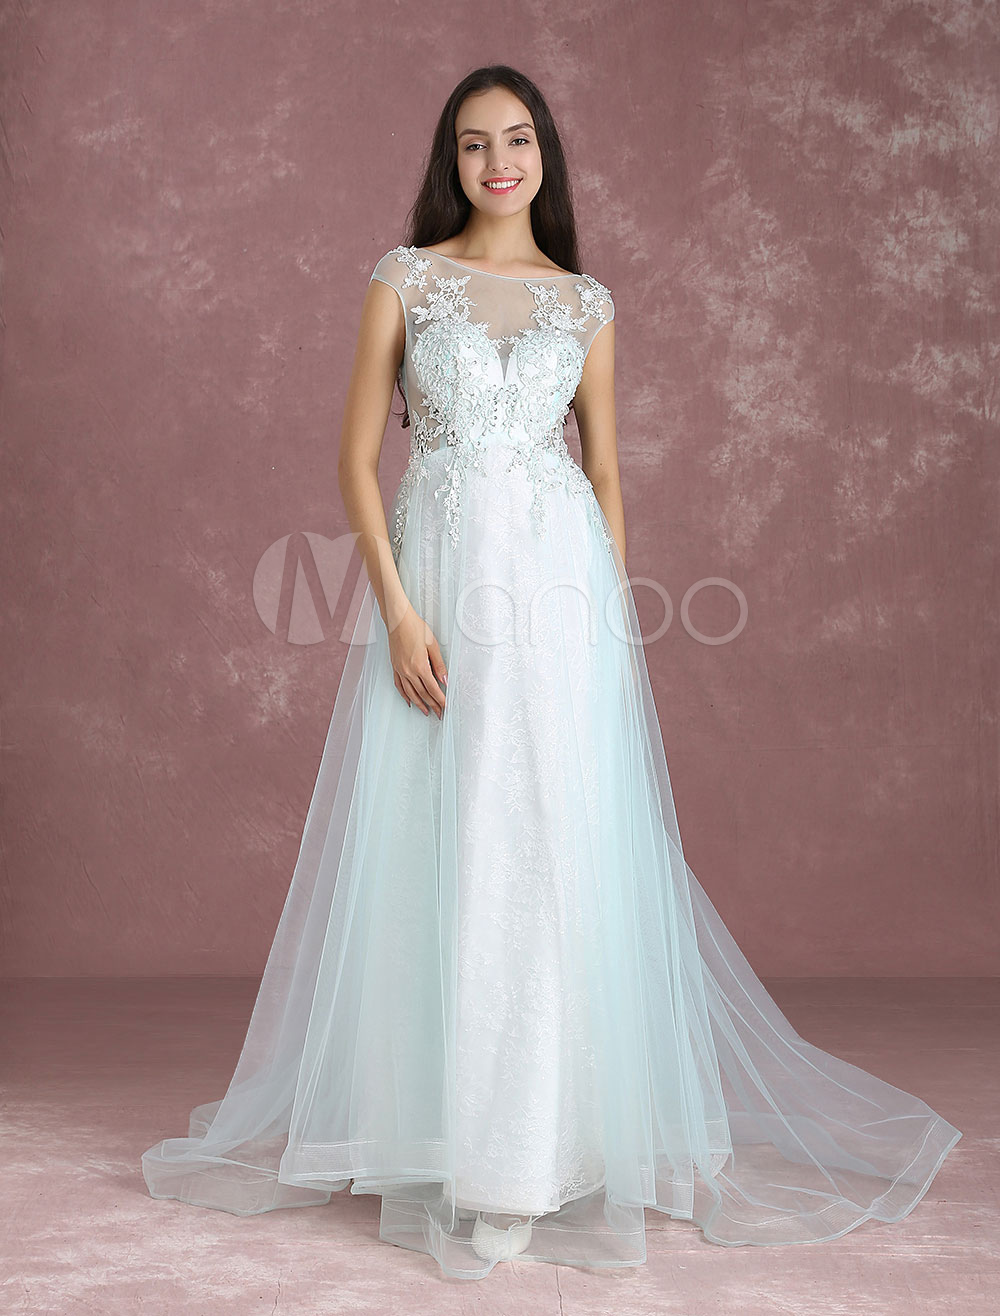 Buy Long Prom Dresses Pastel Blue Tulle Occasion Dress Backless Bateau Neckline Lace Applique Beading A Line Party Dress With Train for $167.19 in Milanoo store